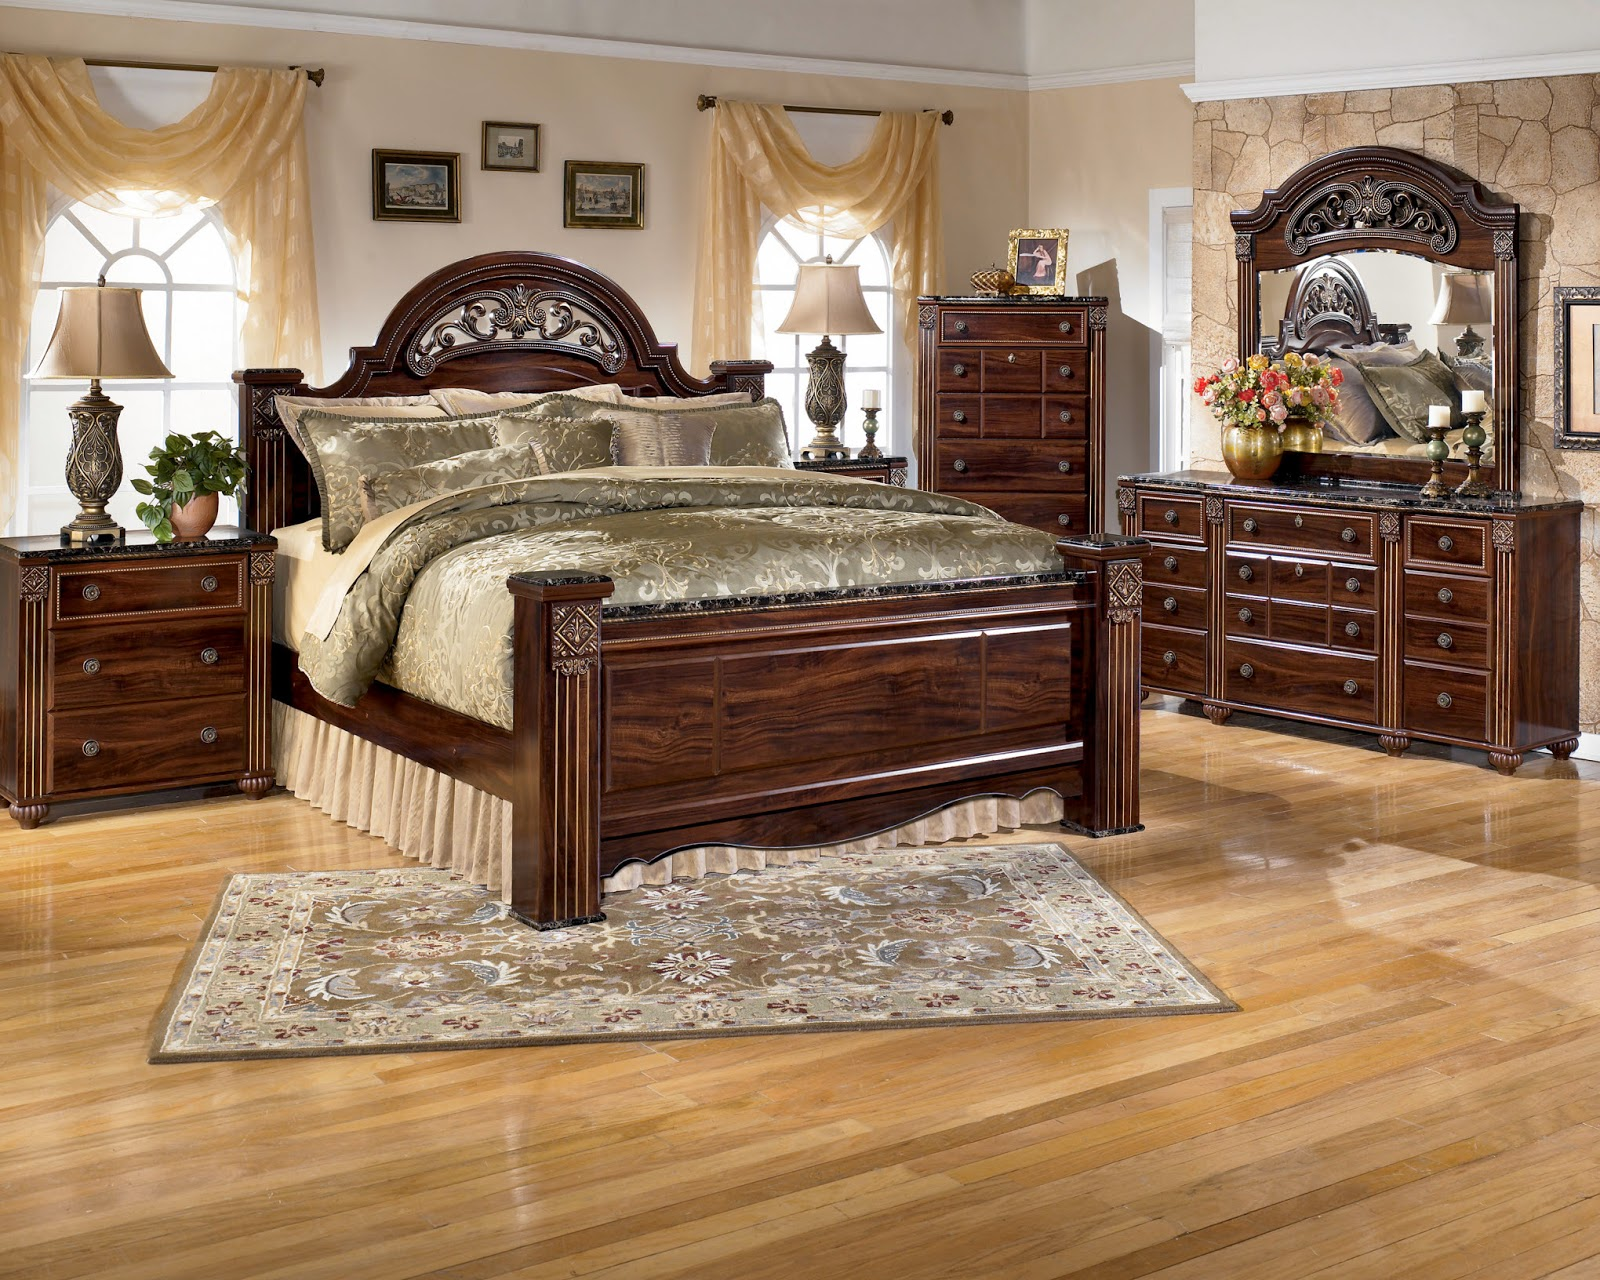 Ashley furniture bedroom sets on sale bedroom furniture for Bedroom furniture set